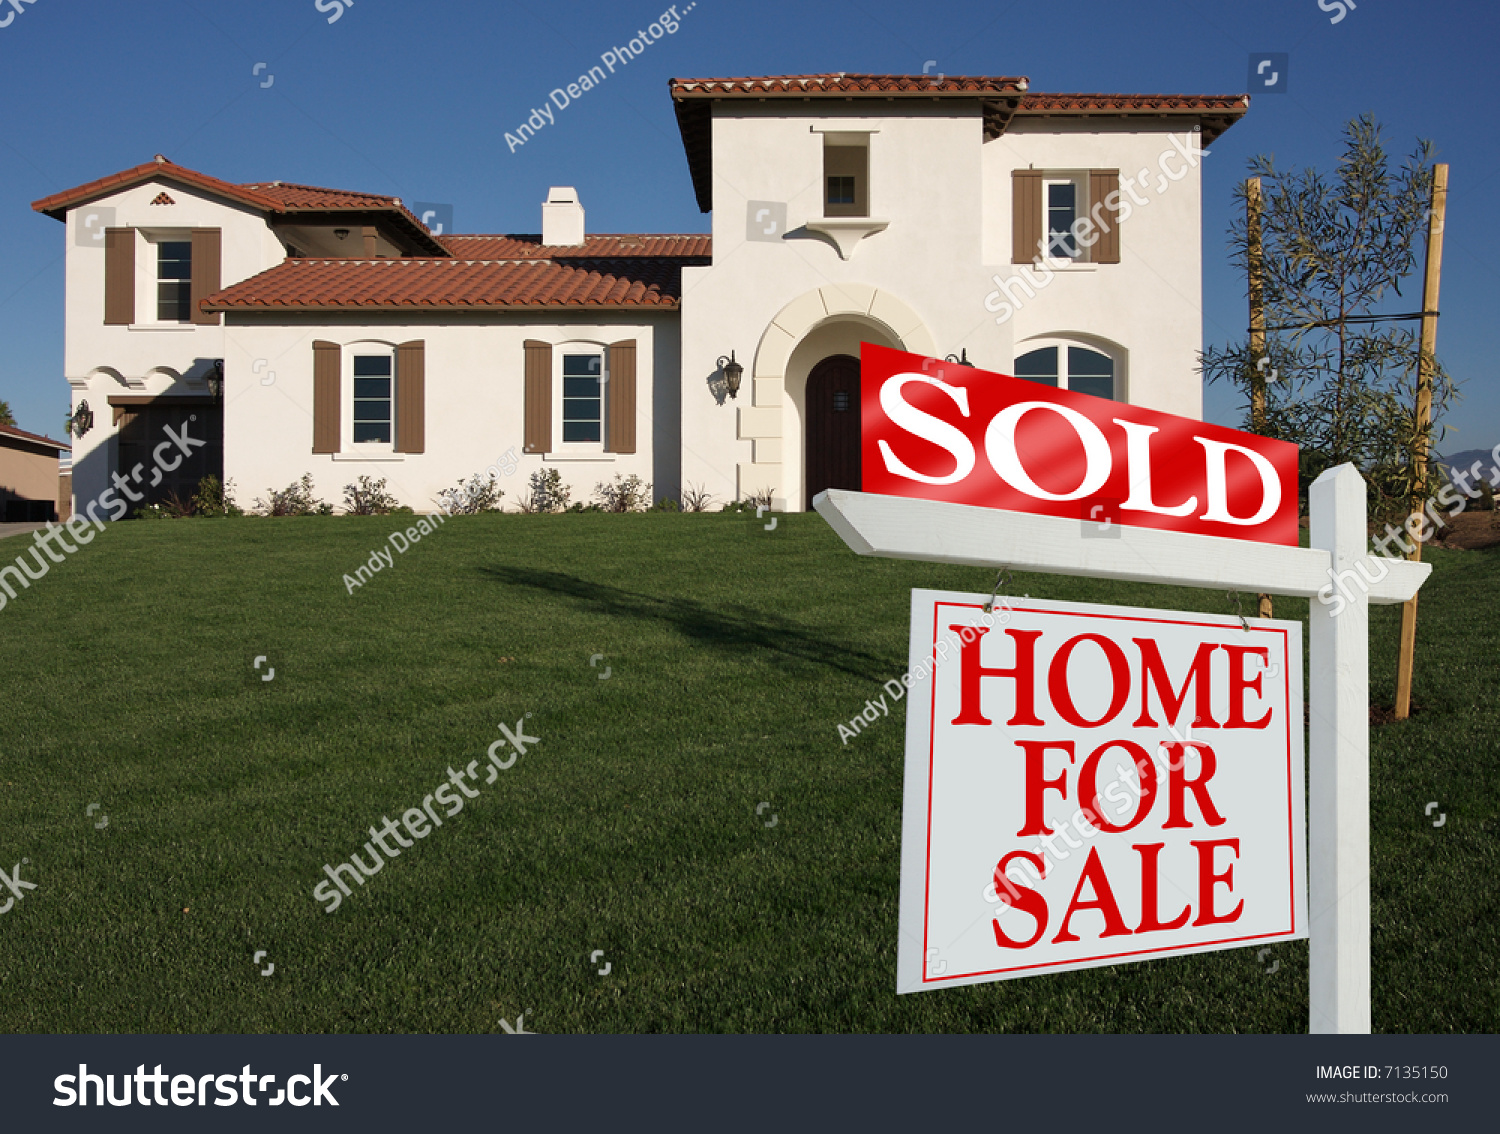 Sold home sale sign front new stock photo 7135150 for New home sign